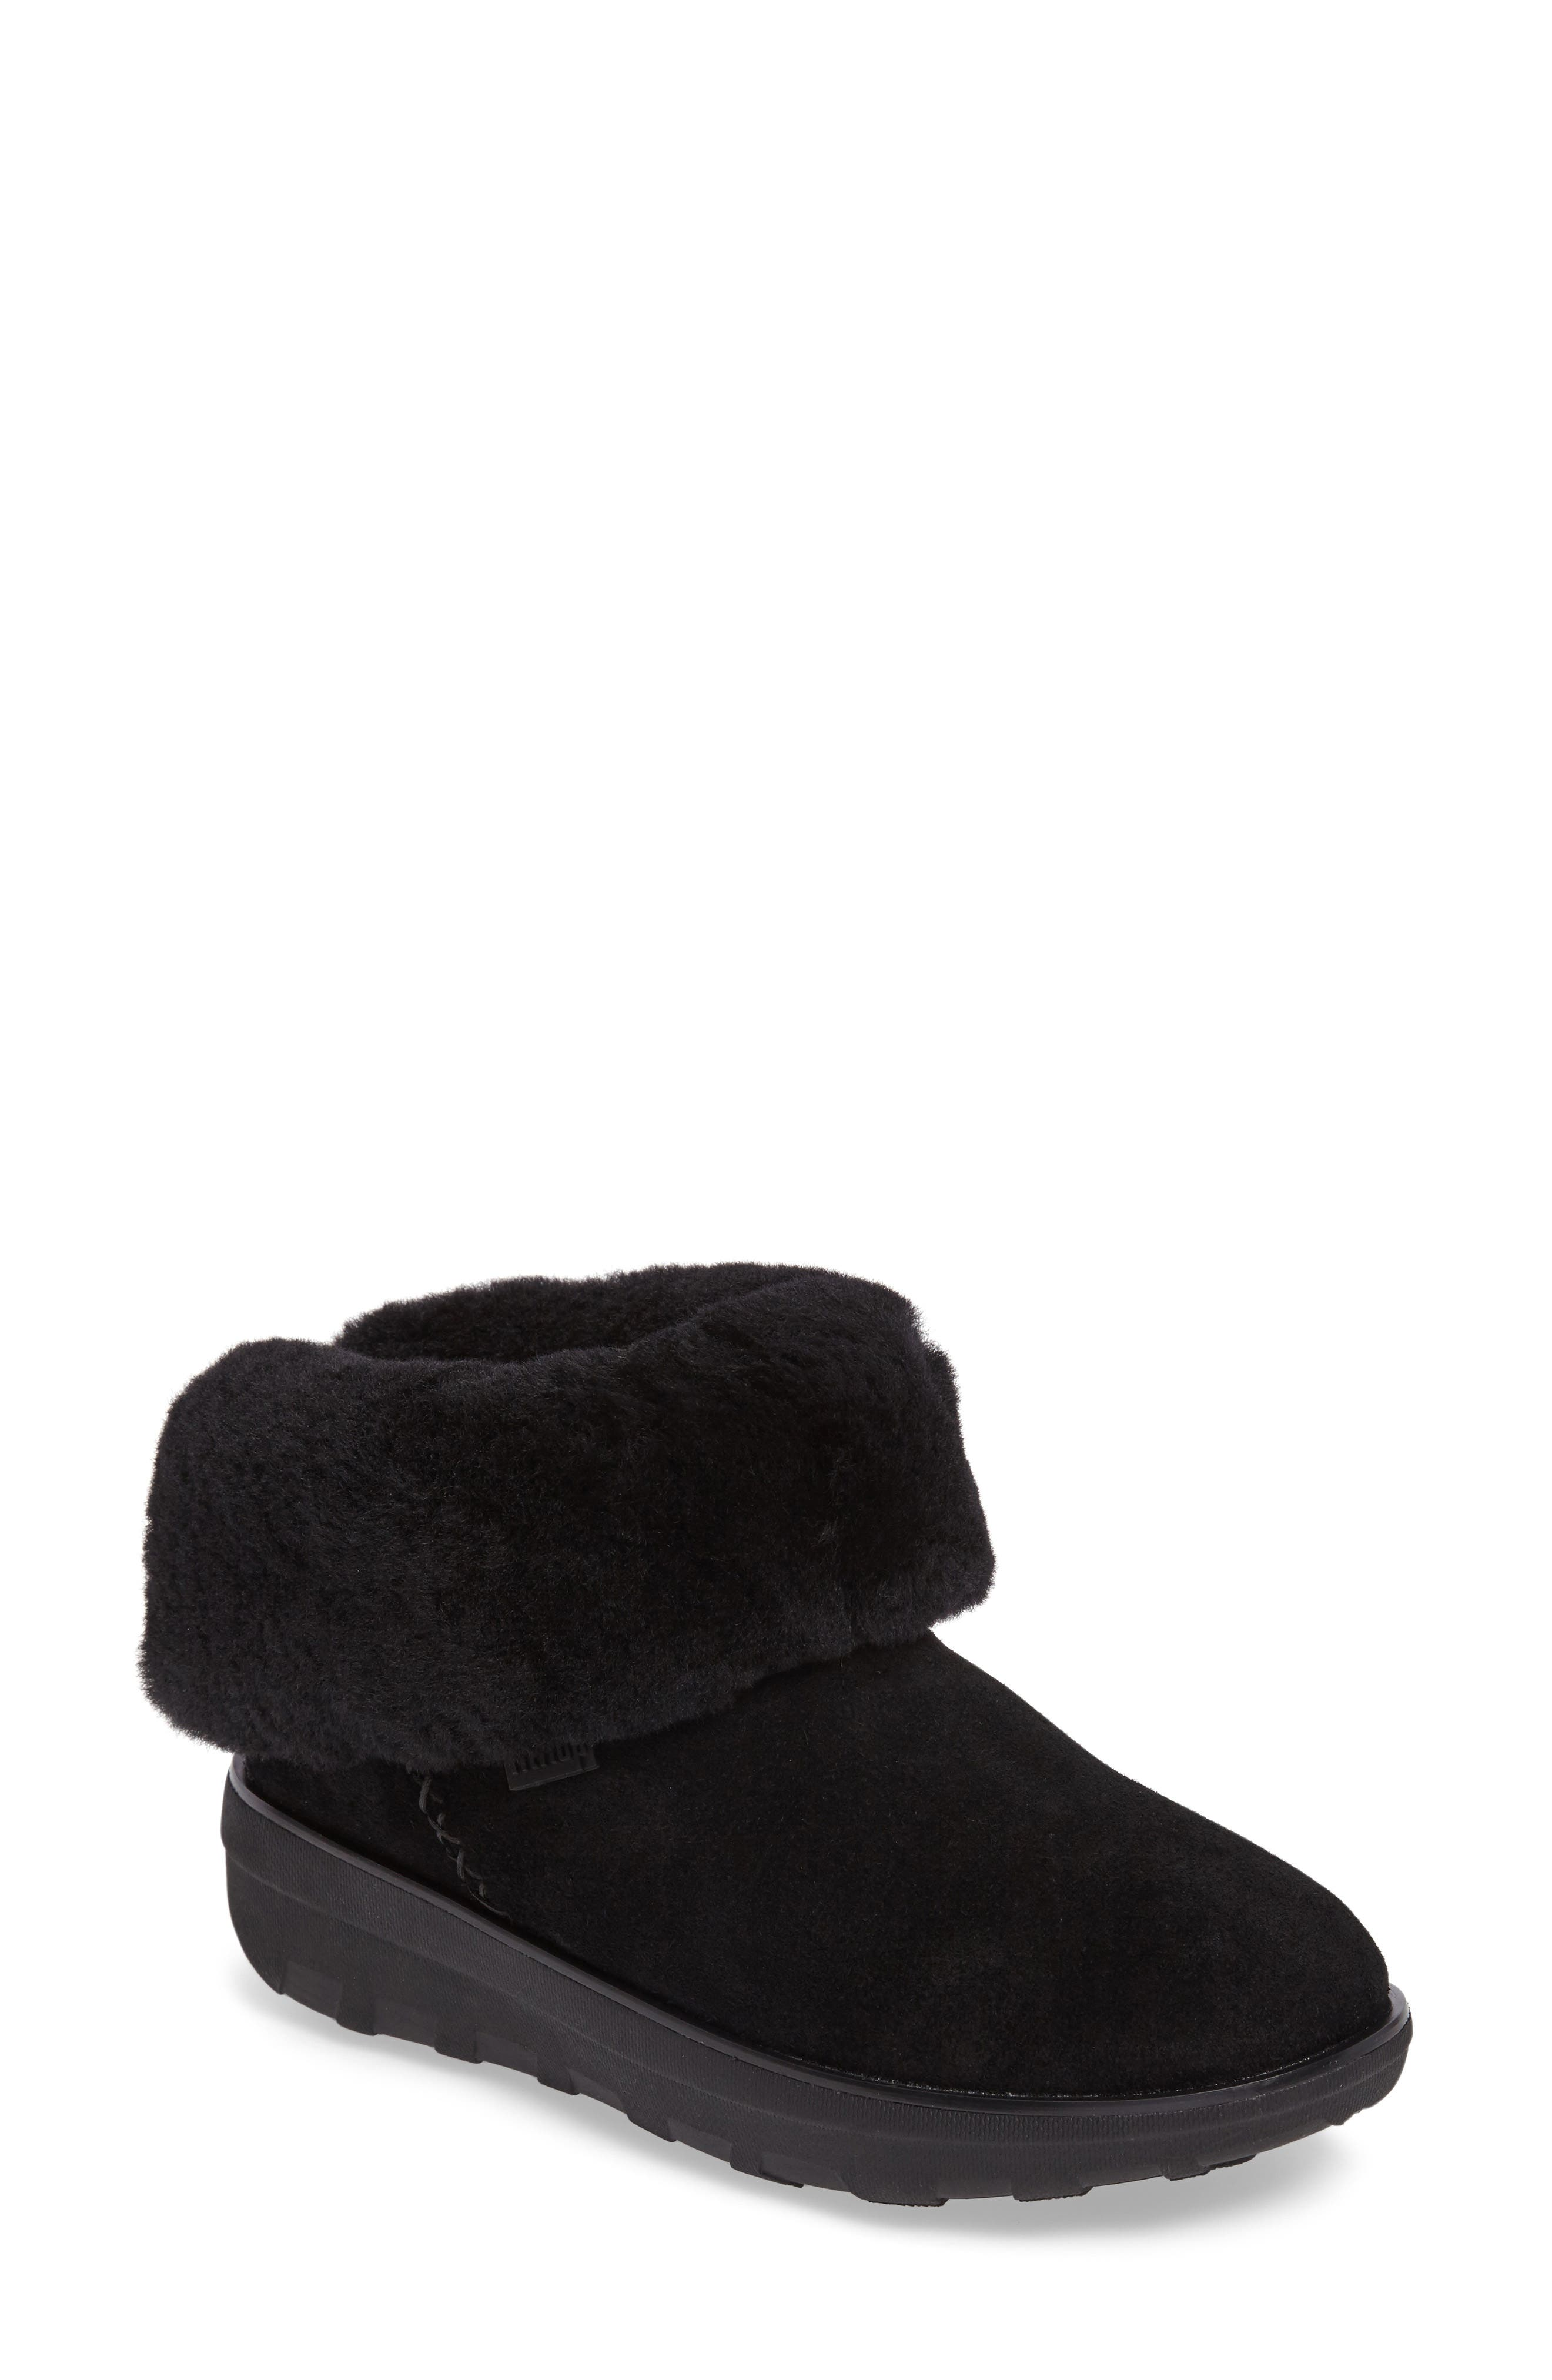 Shorty II Genuine Shearling Lined Boot,                             Main thumbnail 1, color,                             009